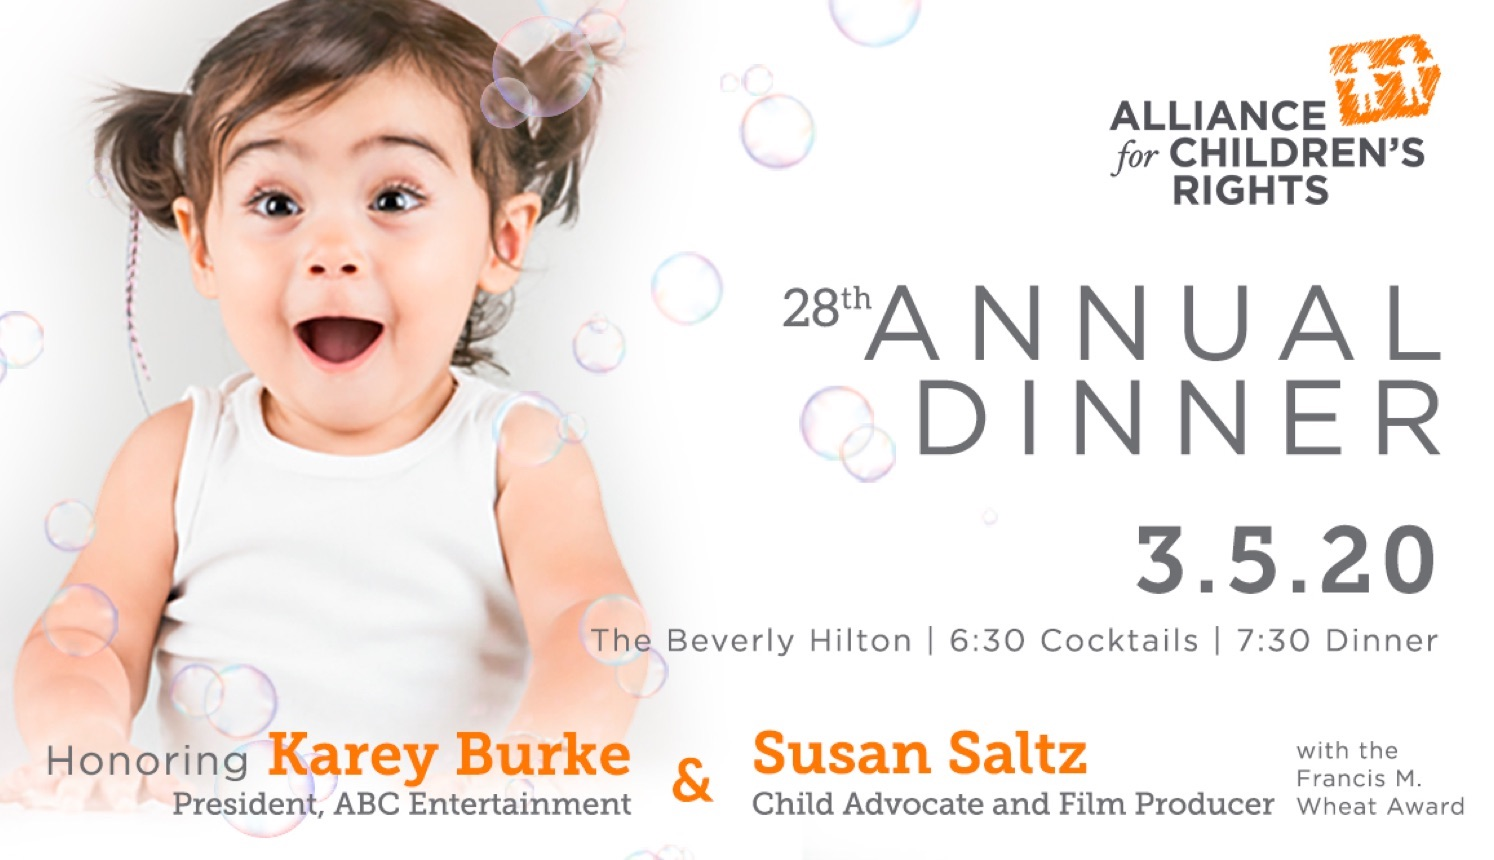 Alliance for Children's Rights 28th annual dinner